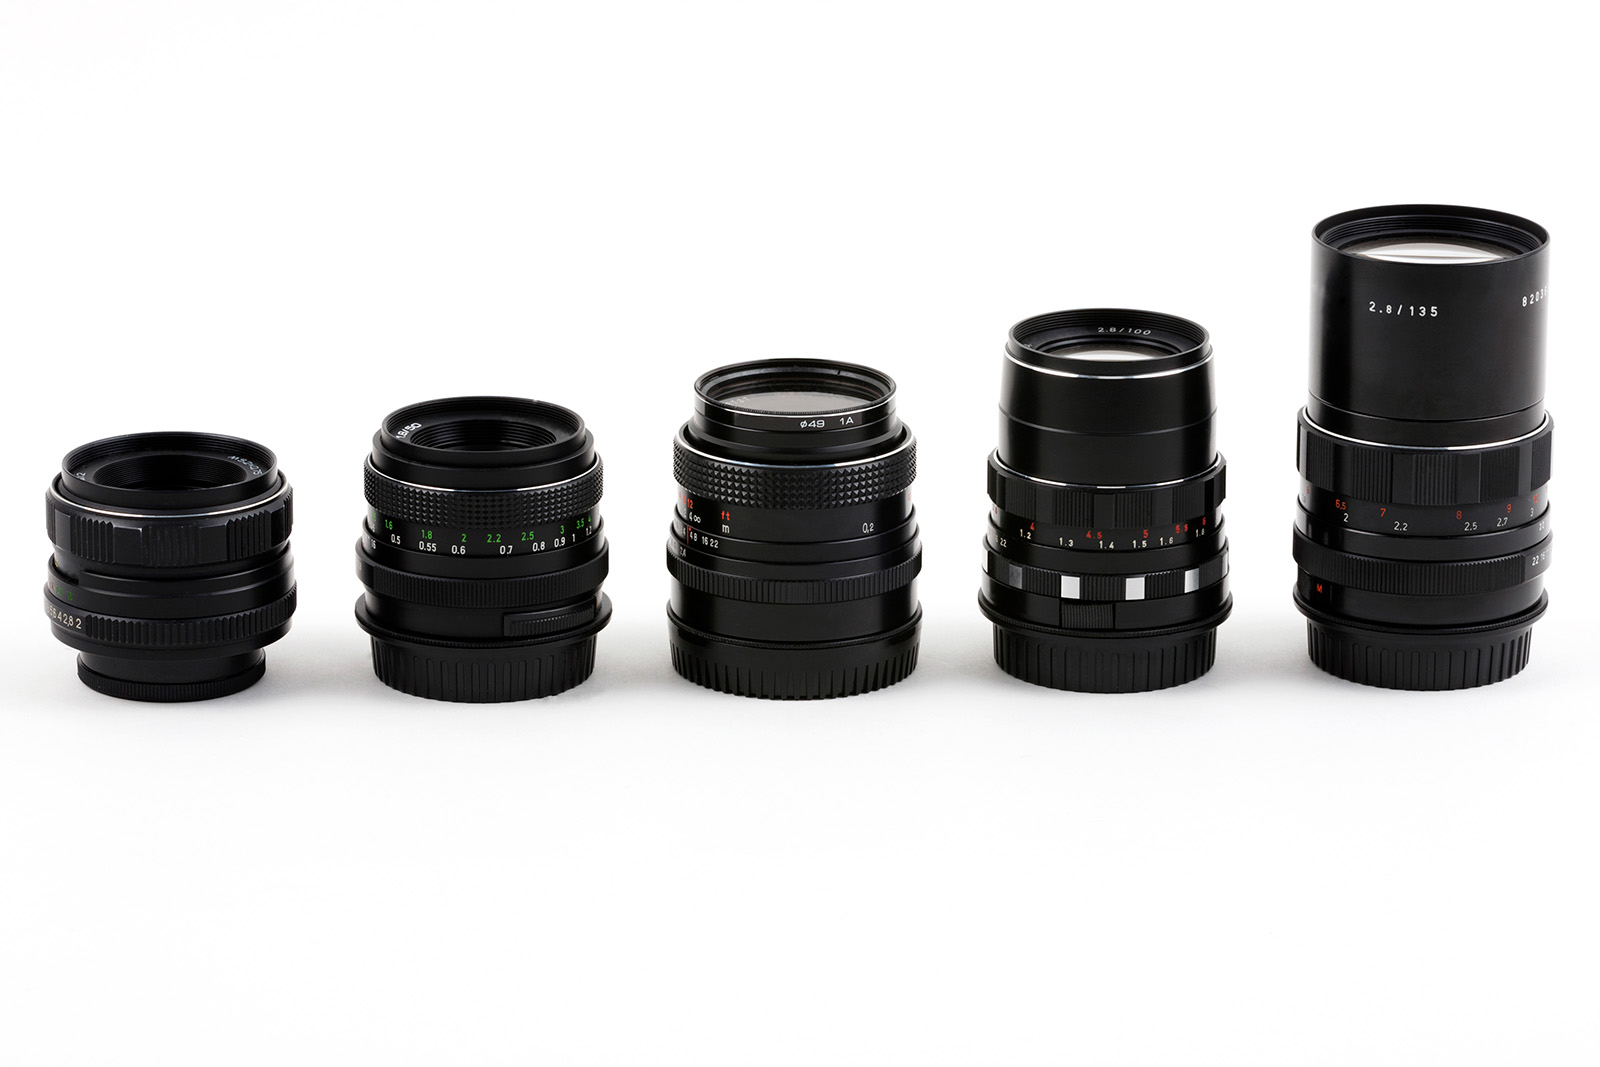 Zoom vs Prime Lenses